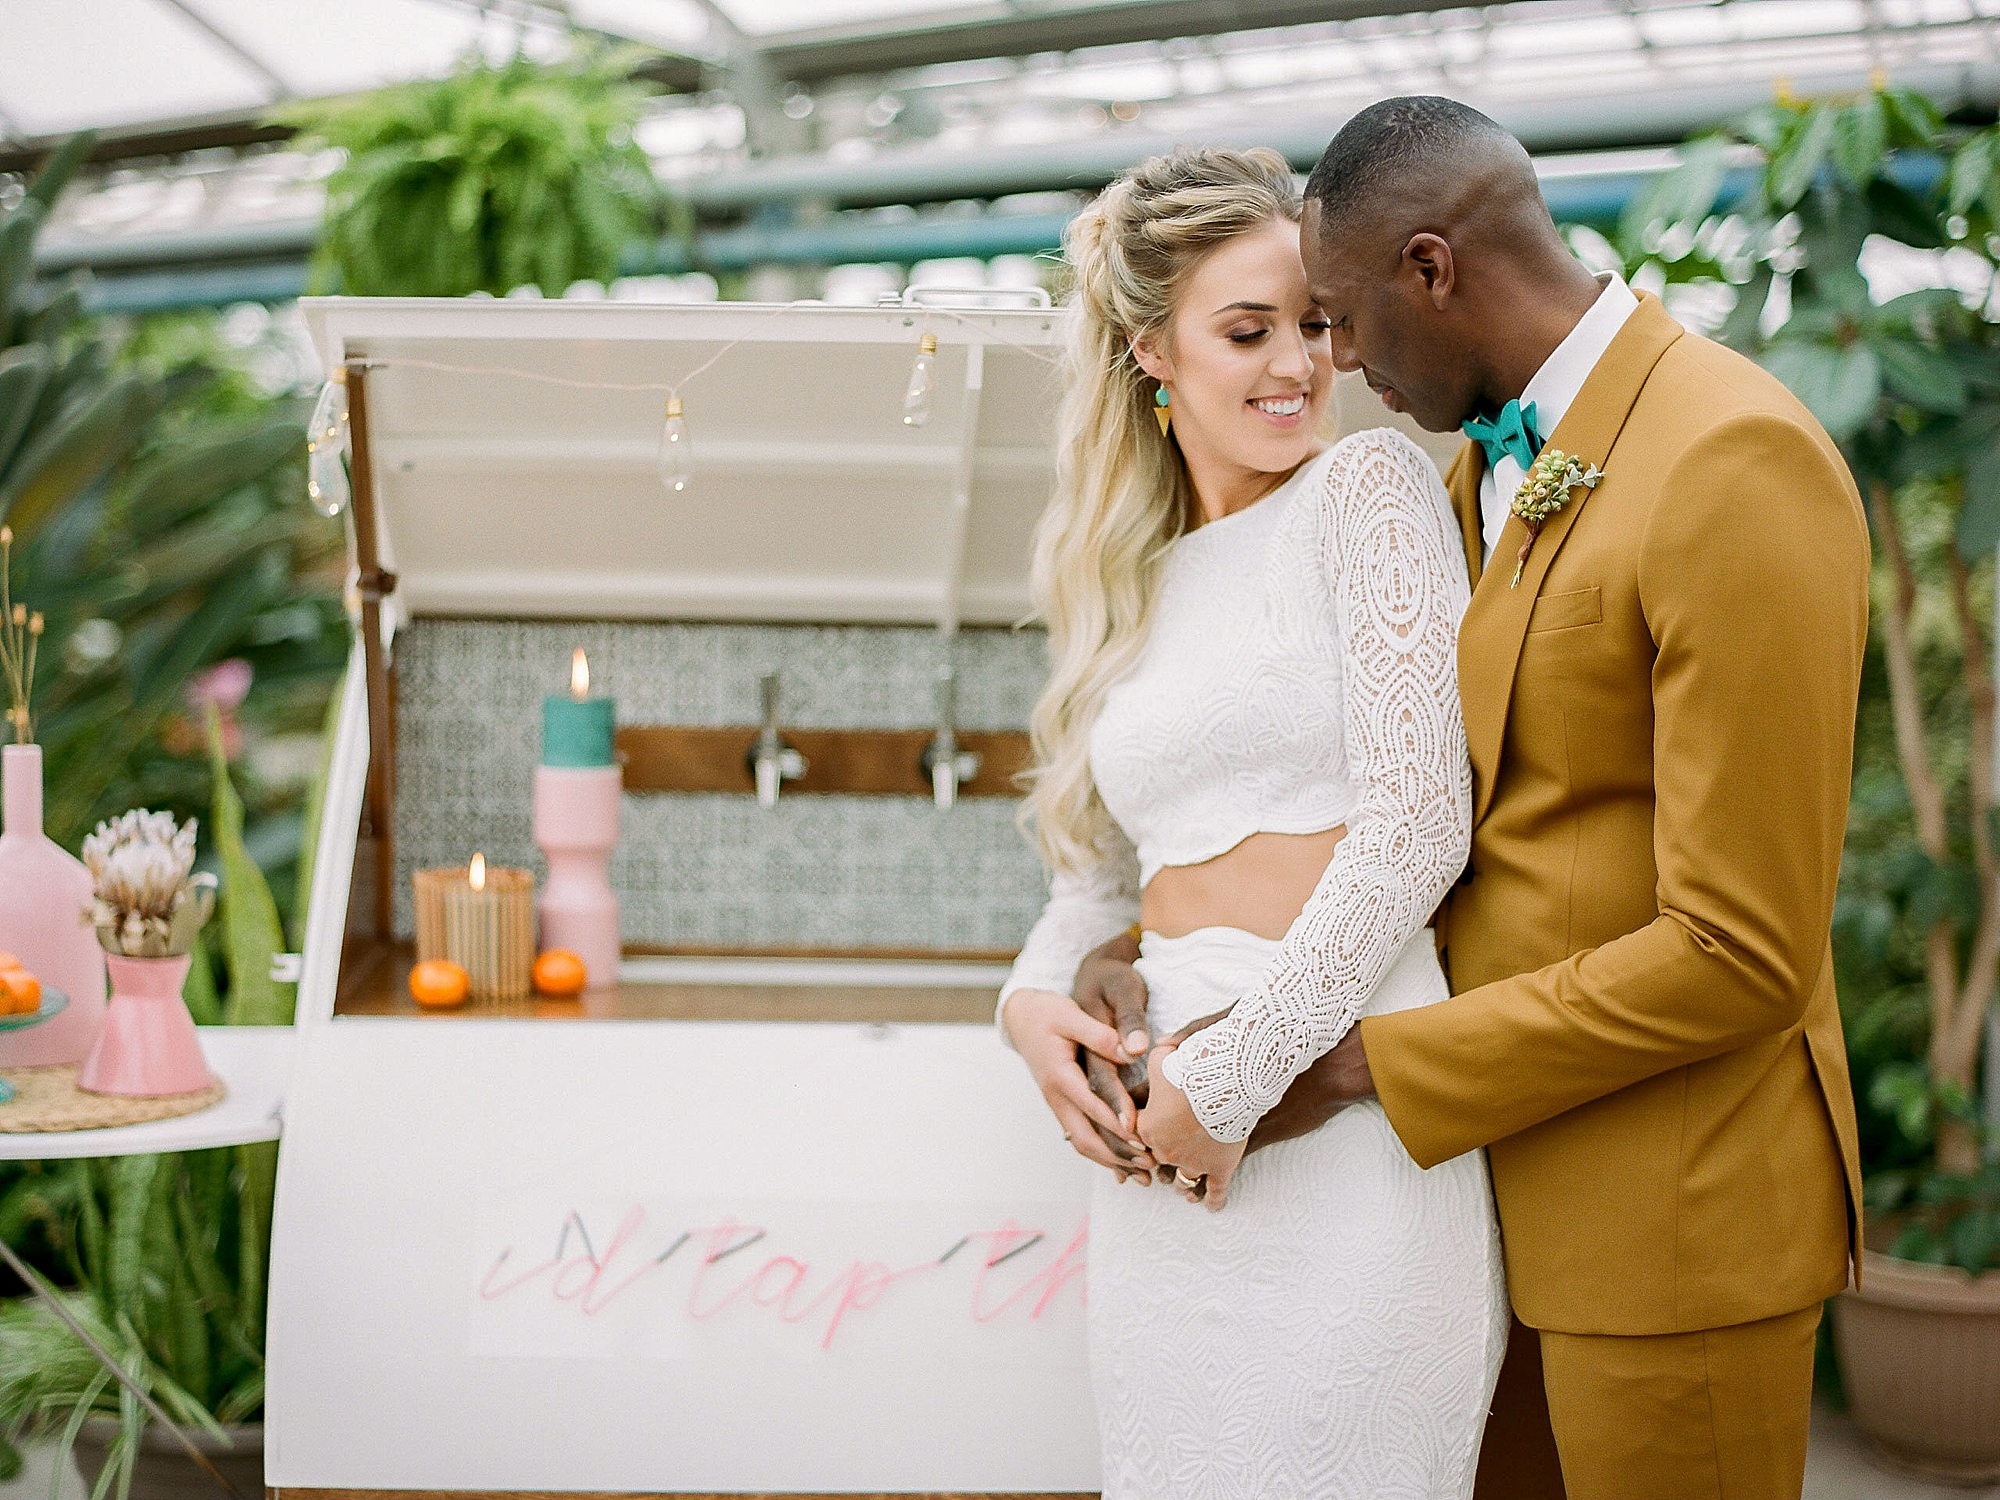 Colorful and Vibrant Wedding Photography at Fairmount Horticultural Center by Magdalena Studios 0016